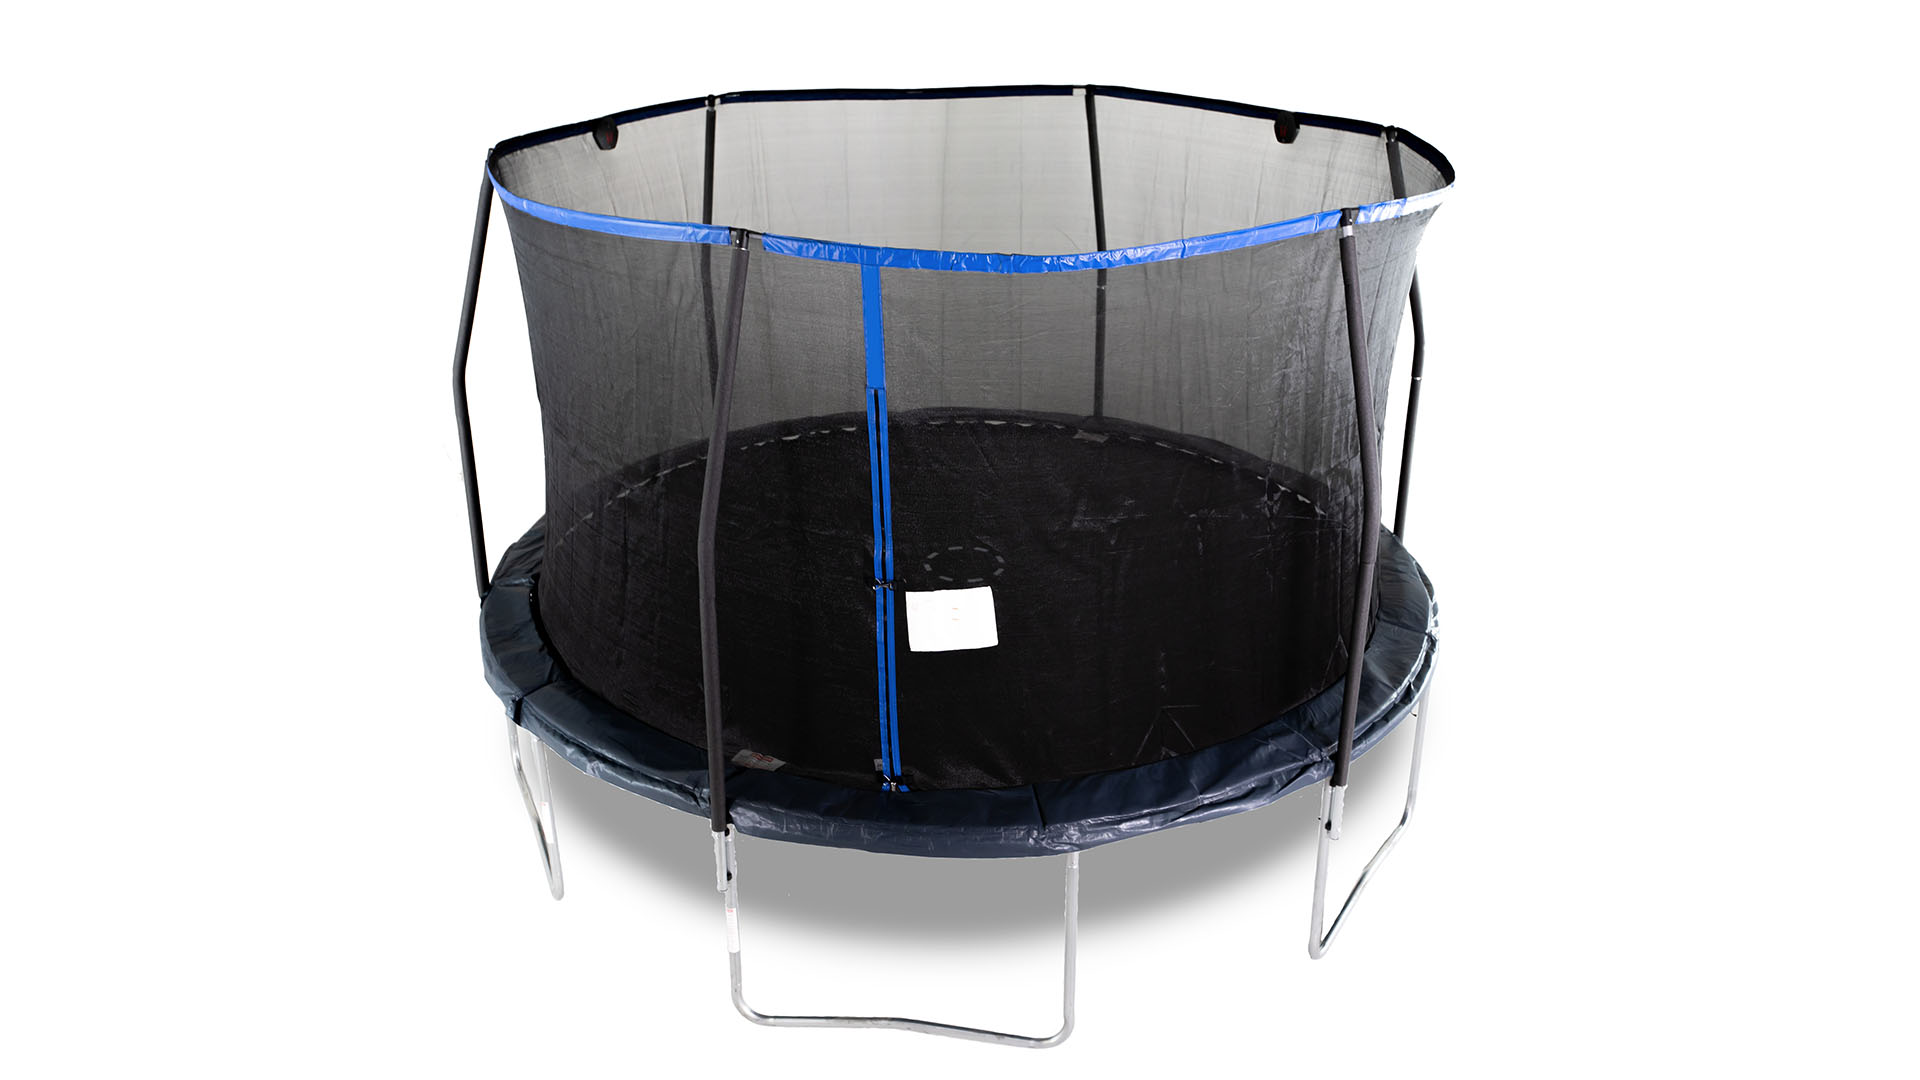 awesome-things-kids-backyard-bounce-pro-trampoline